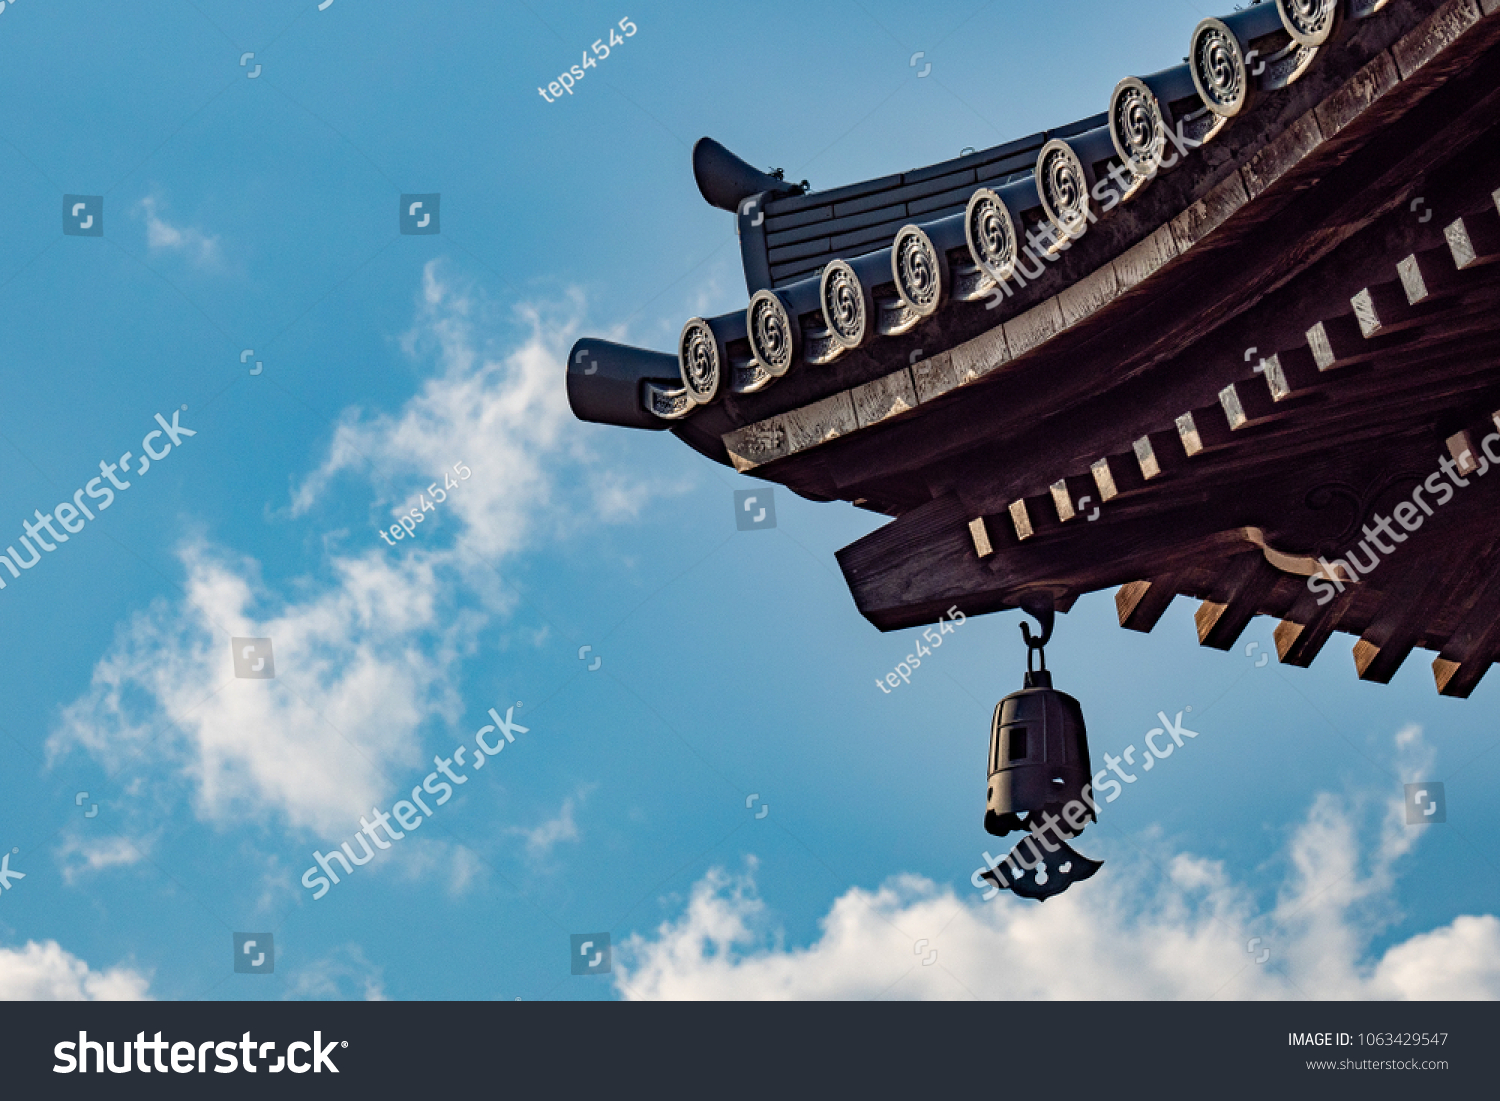 Japanese Temple Roof Design Buildings Landmarks Stock Image 1063429547